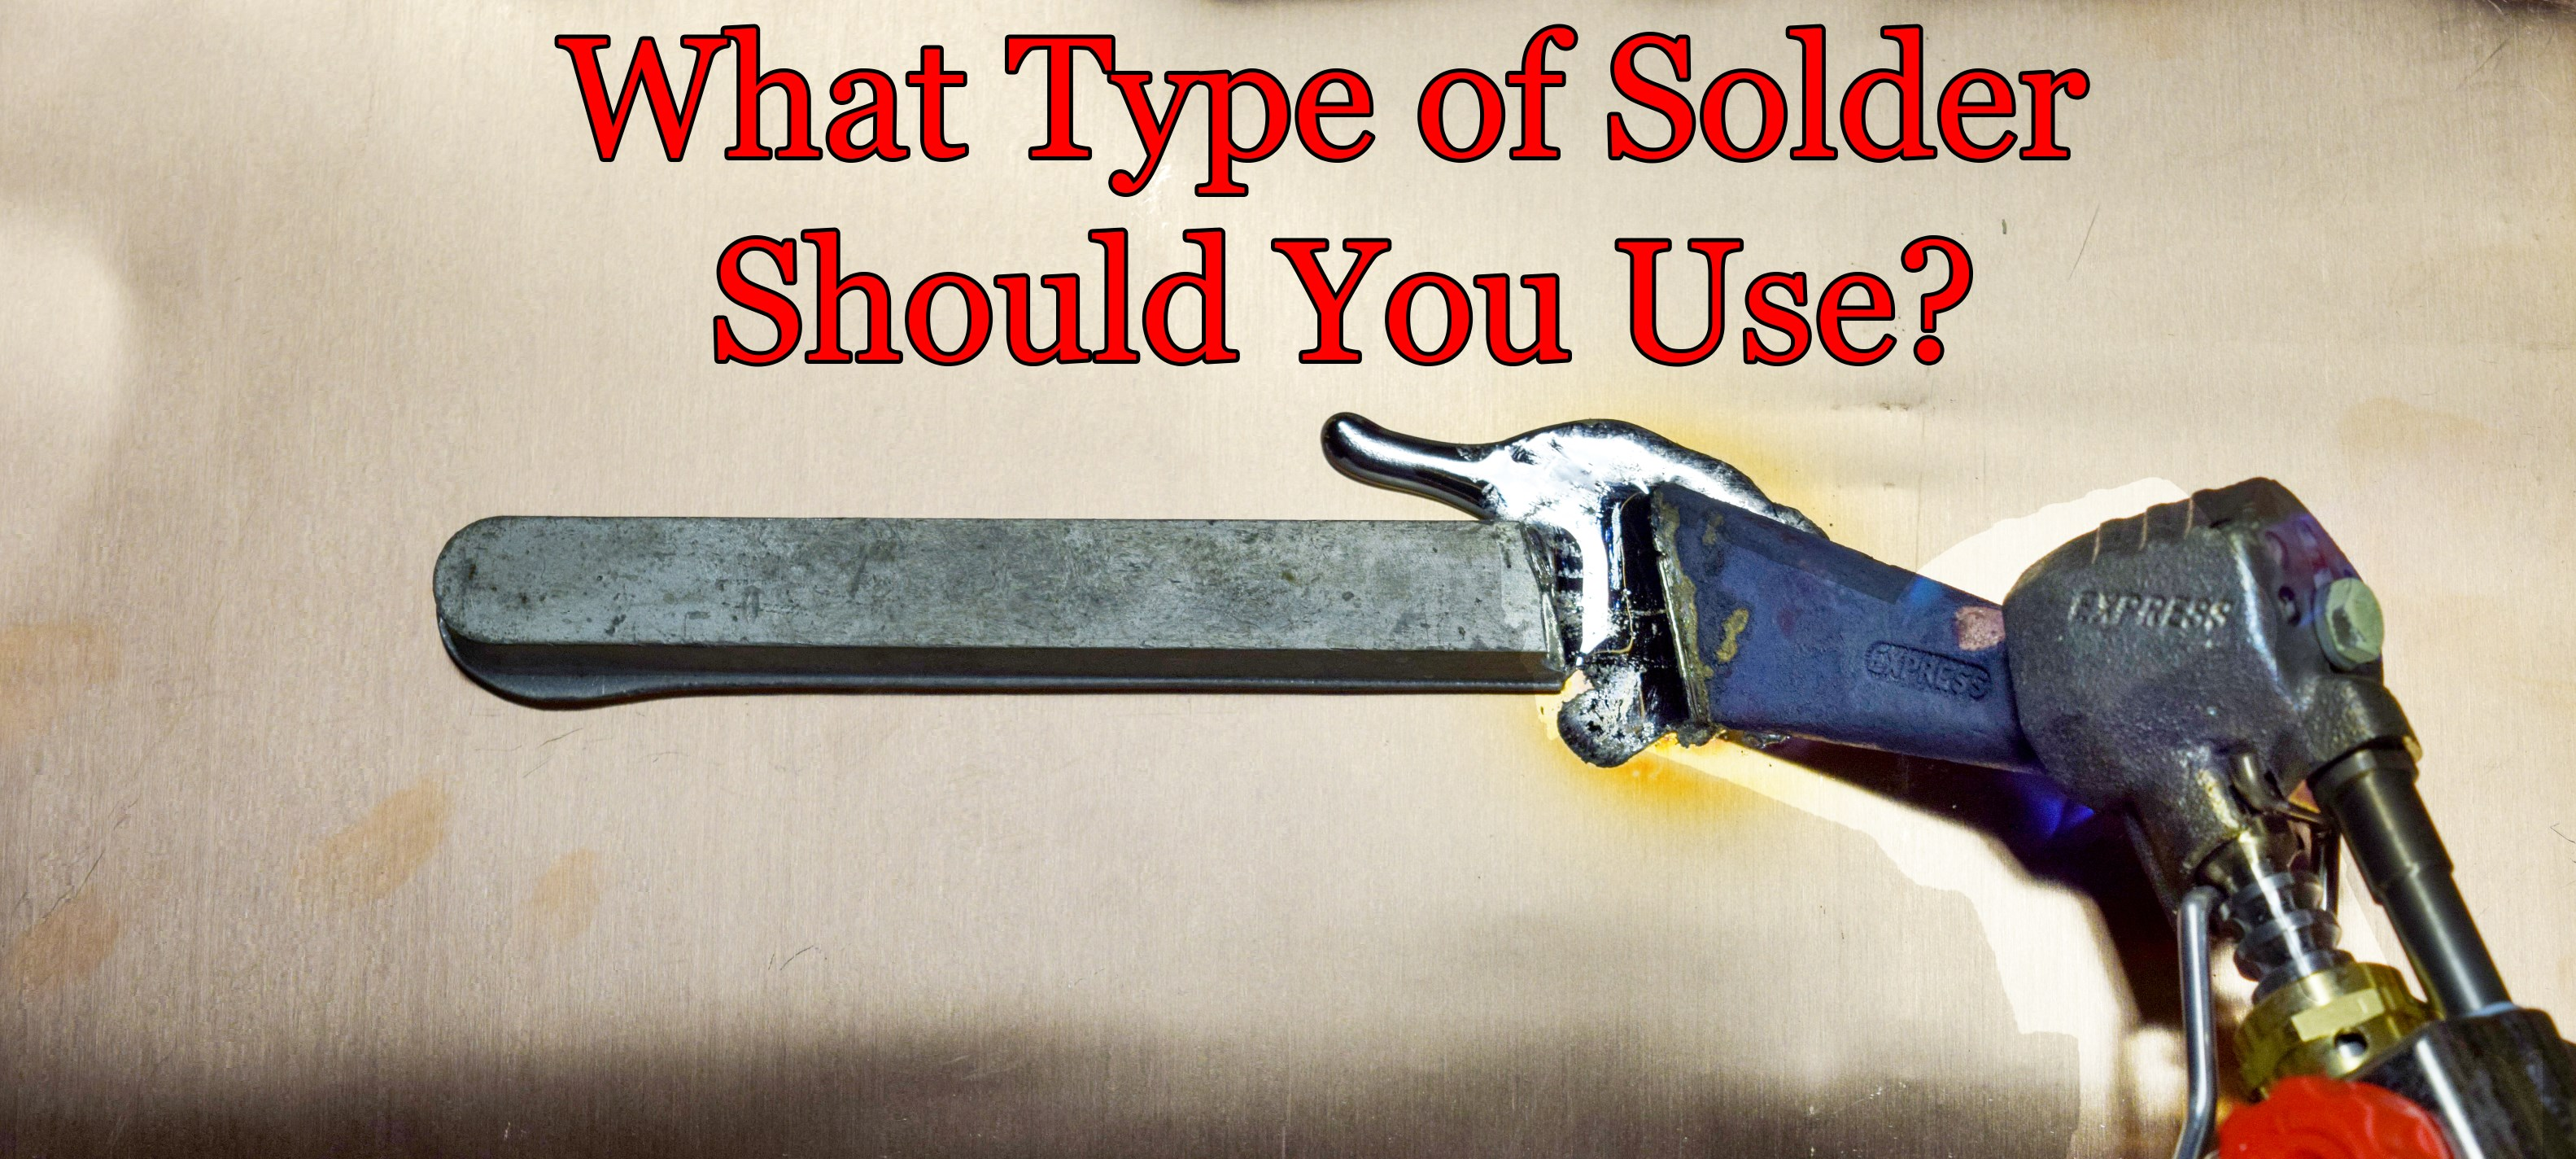 What solder should you use for your job?